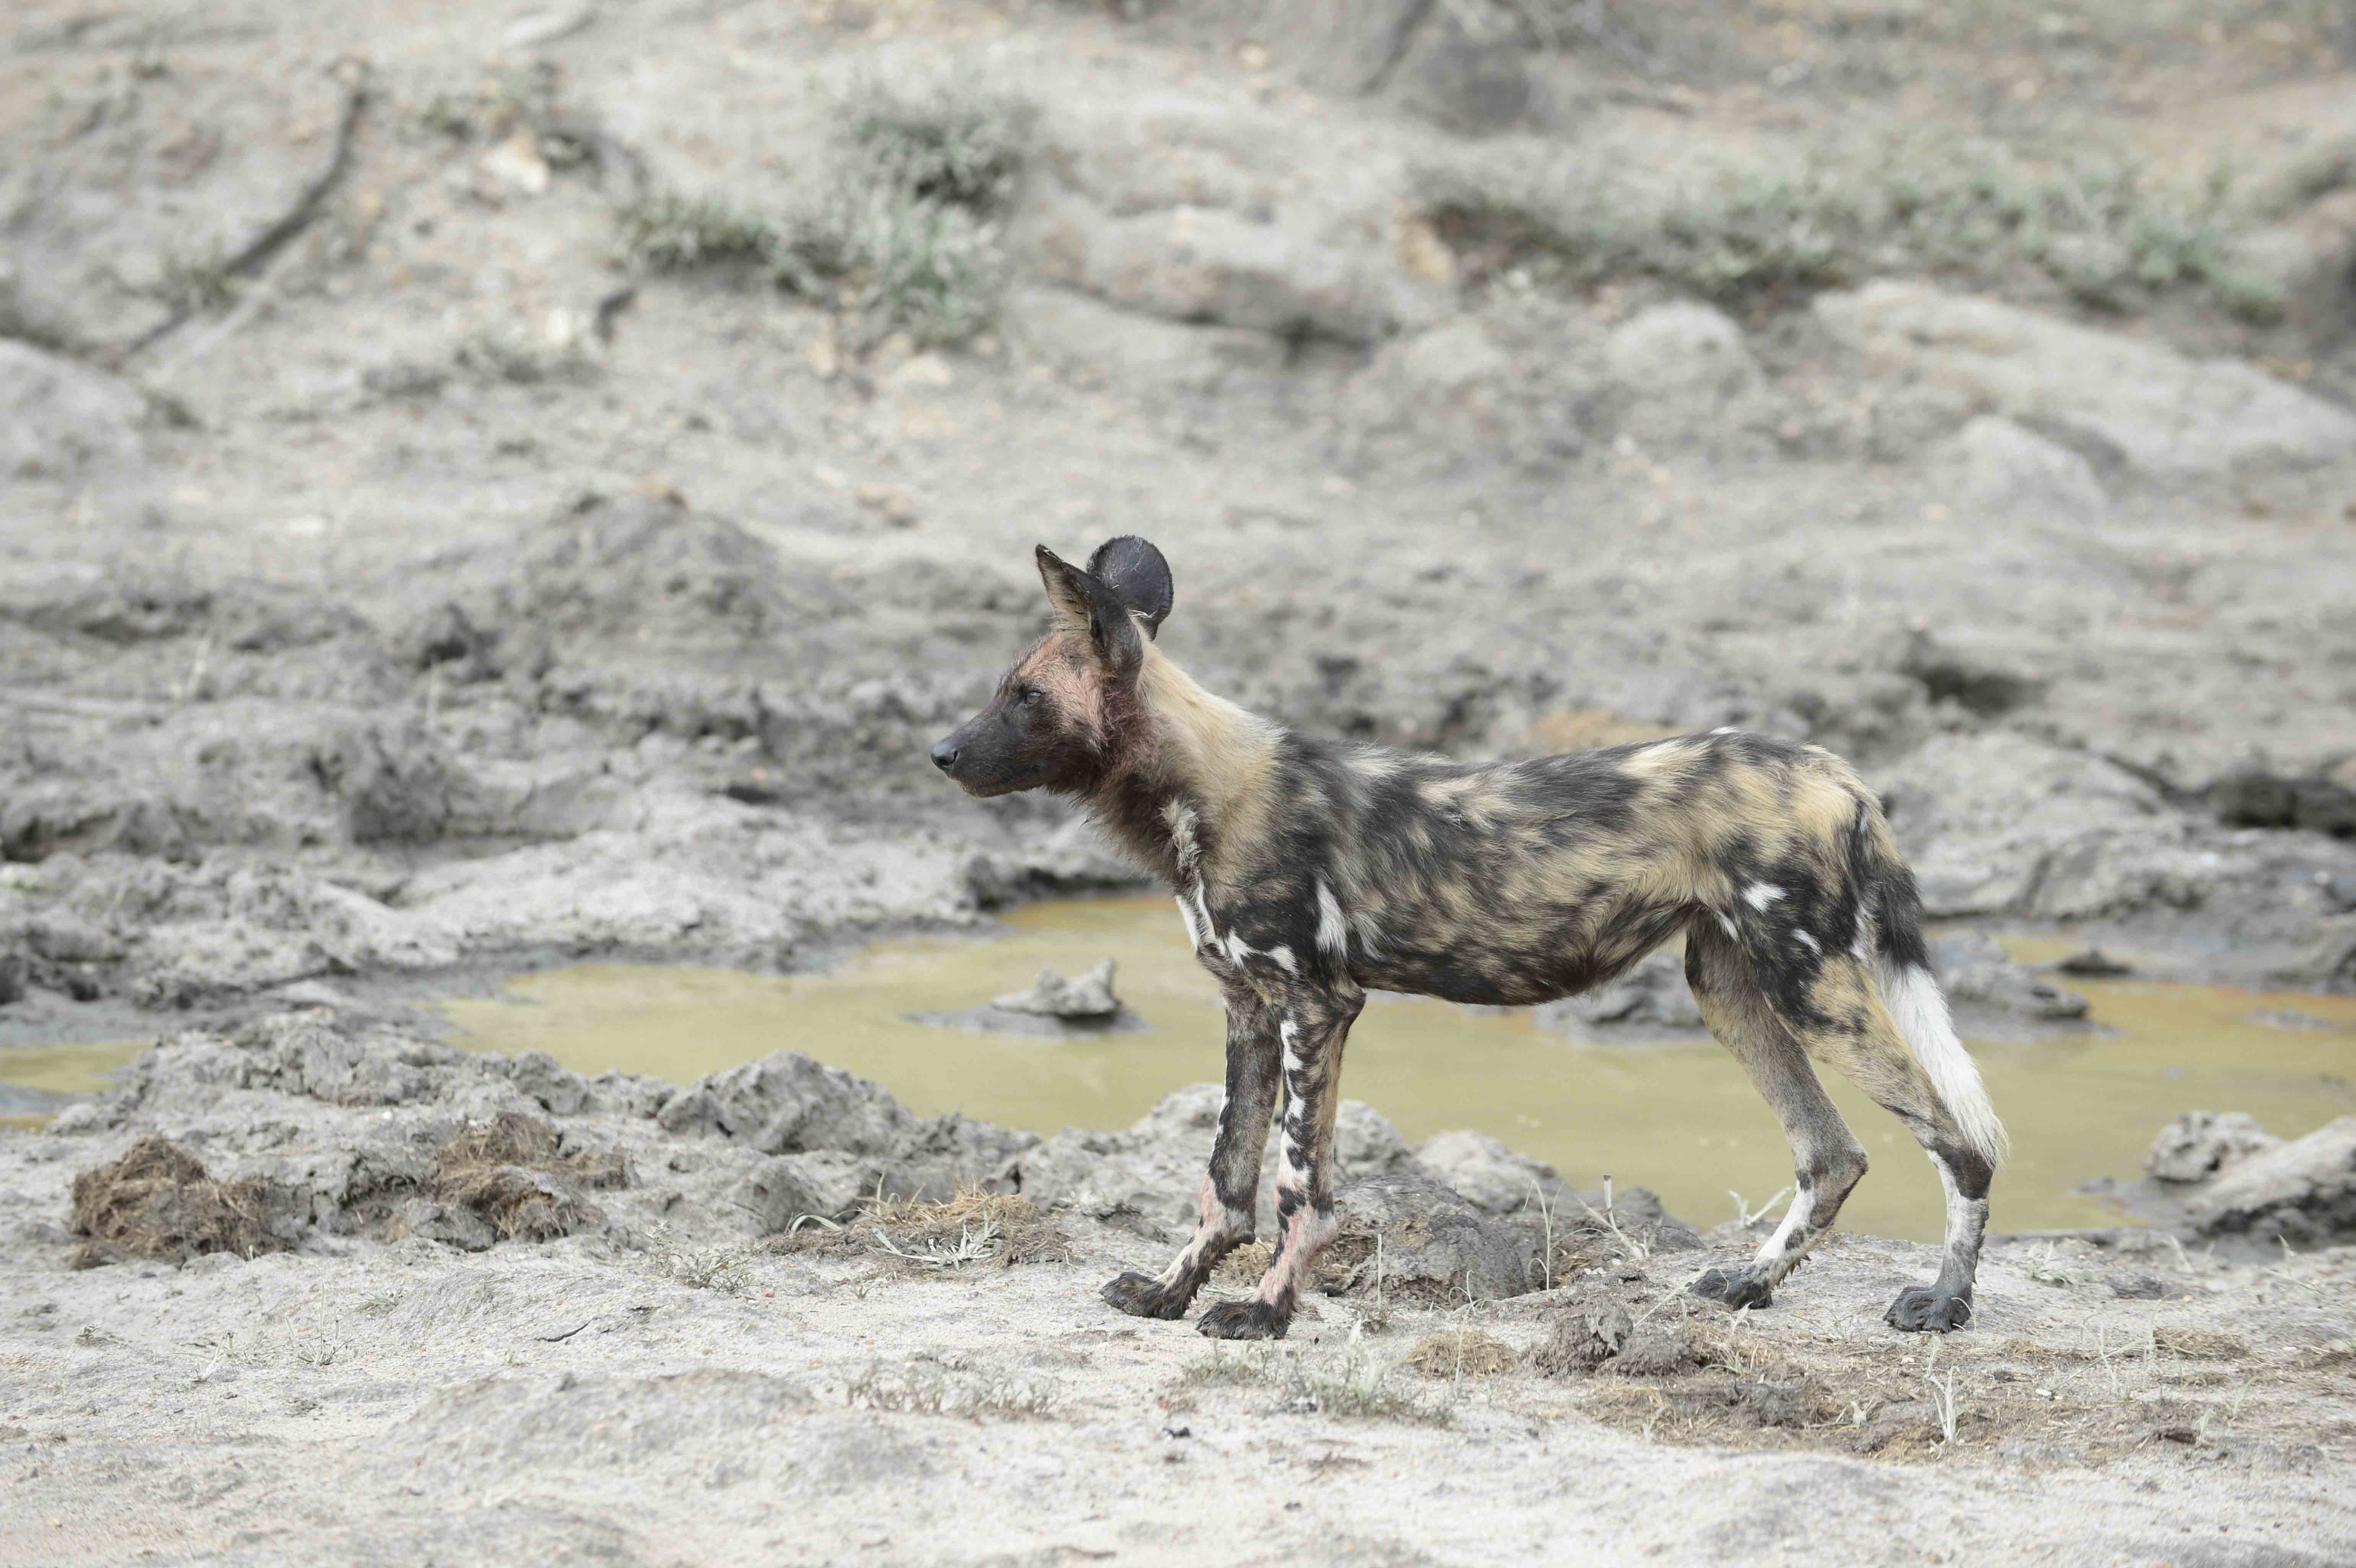 Wild Dog /Lycaon pictus, ZA ©Johannes Ratermann